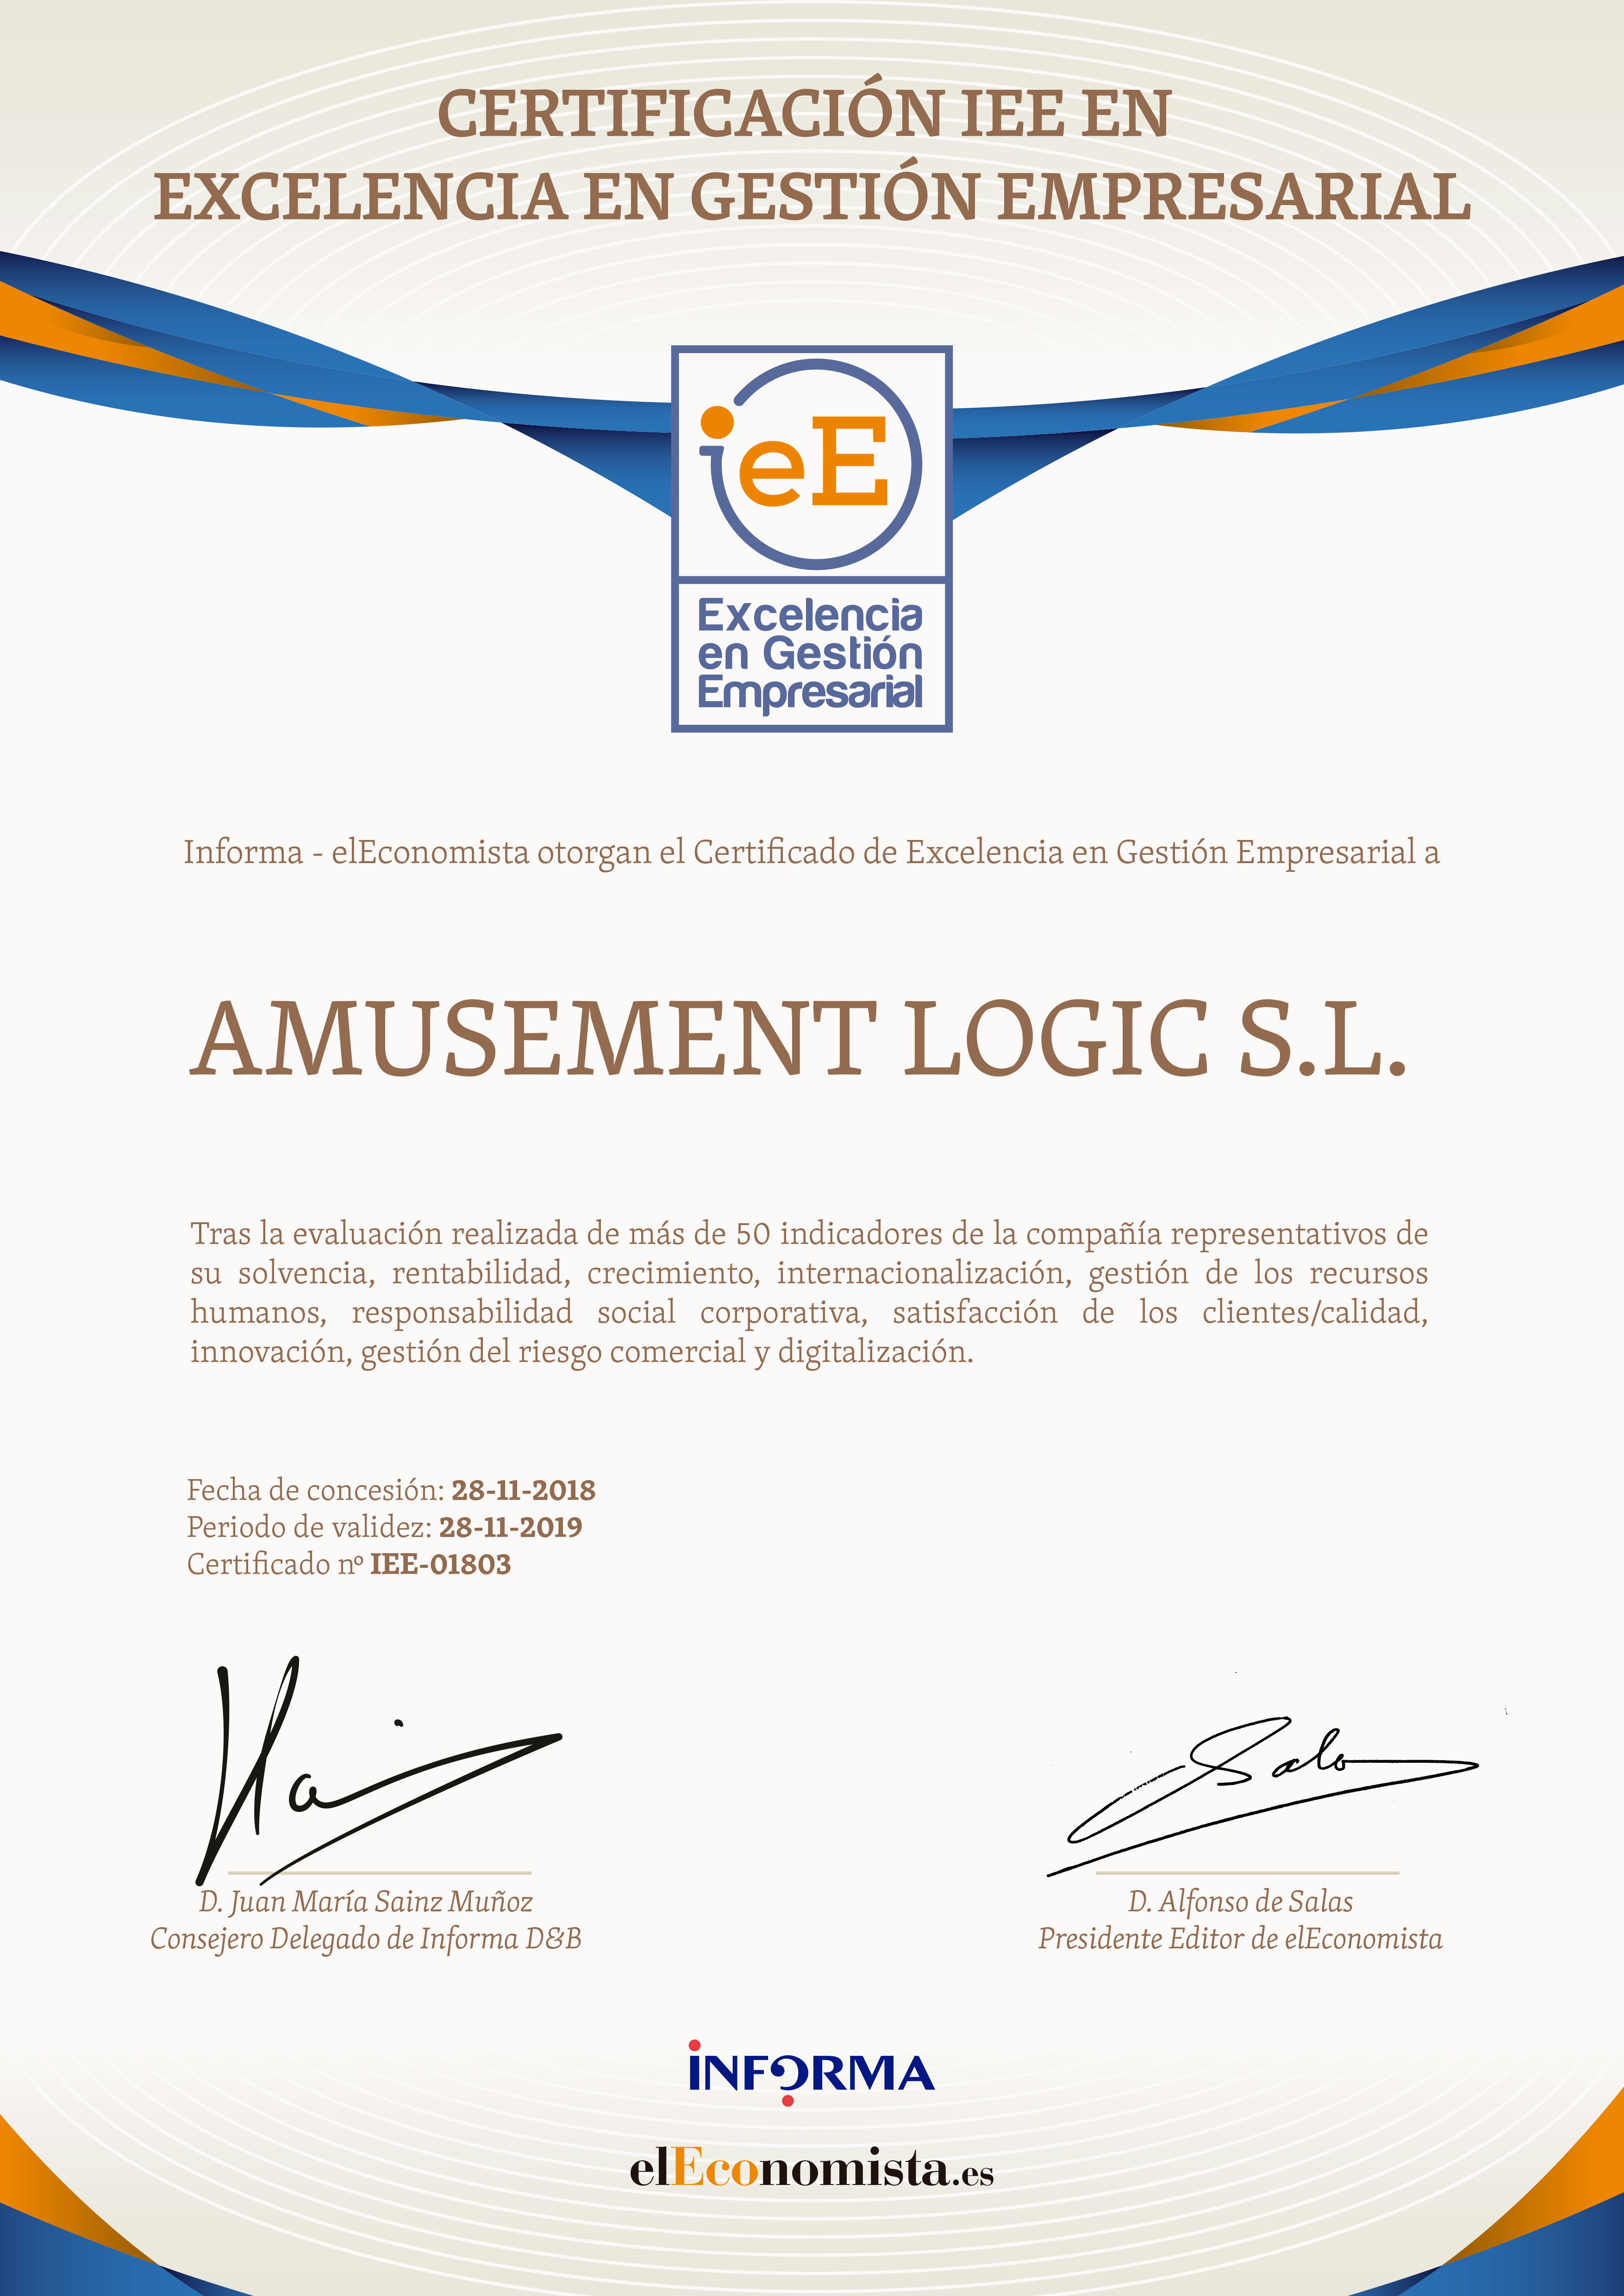 Certificado-IEE-01803_AMUSEMENT-LOGIC-SL-